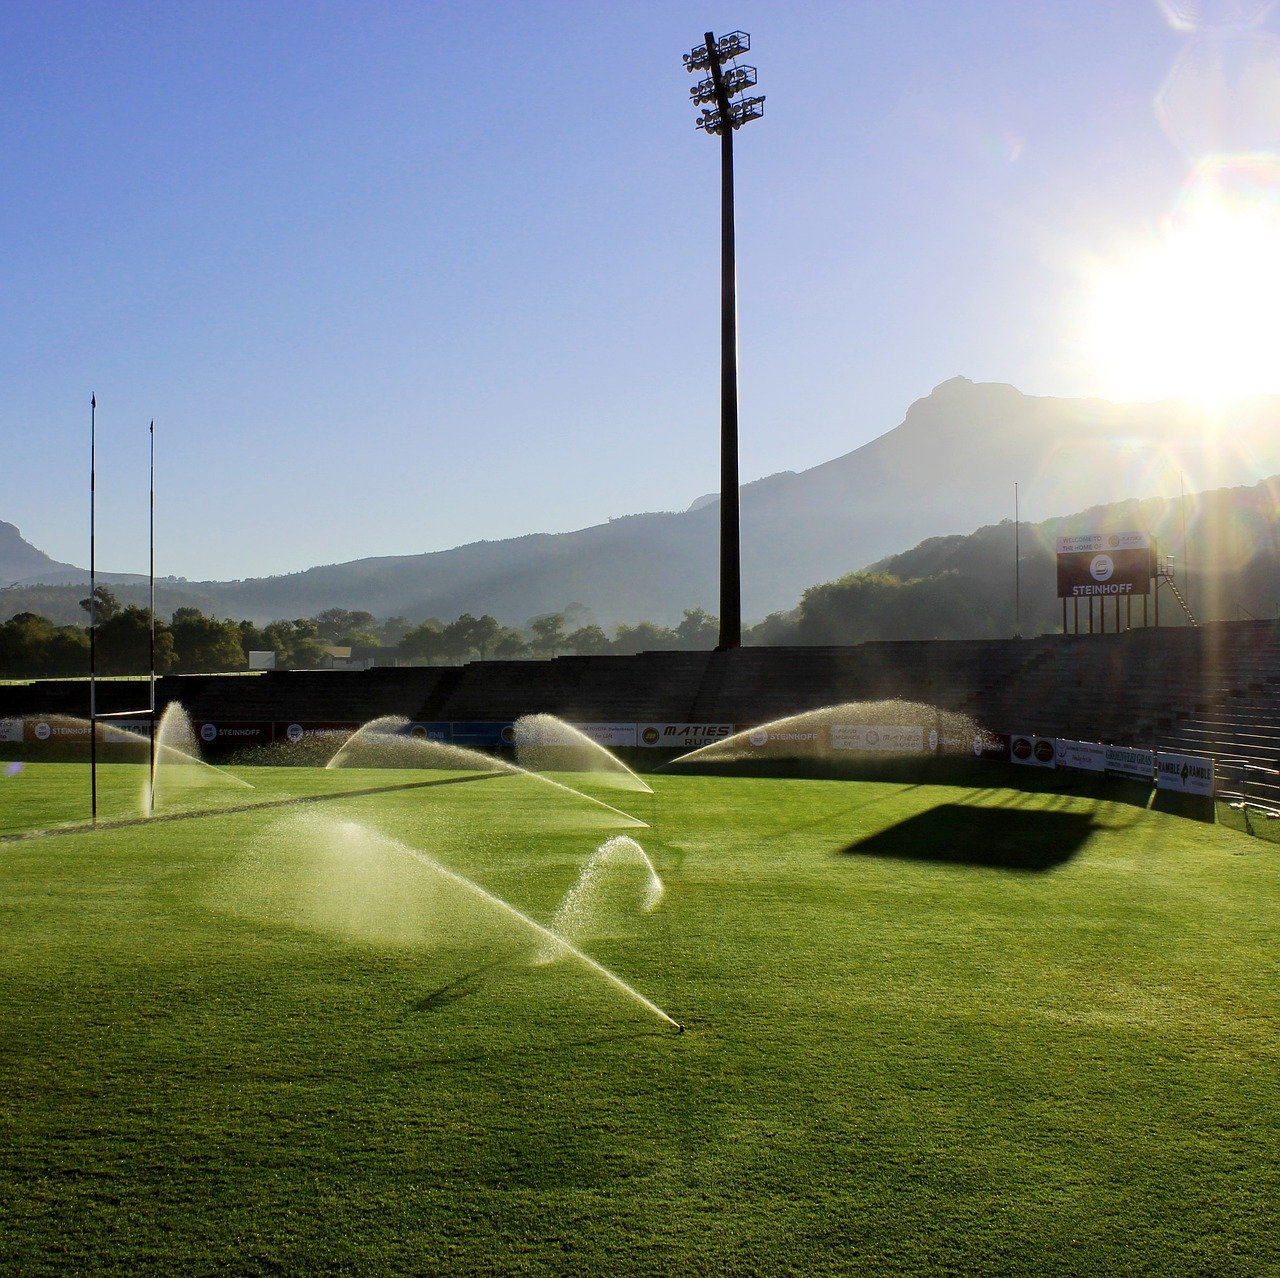 field, sprinklers, photography